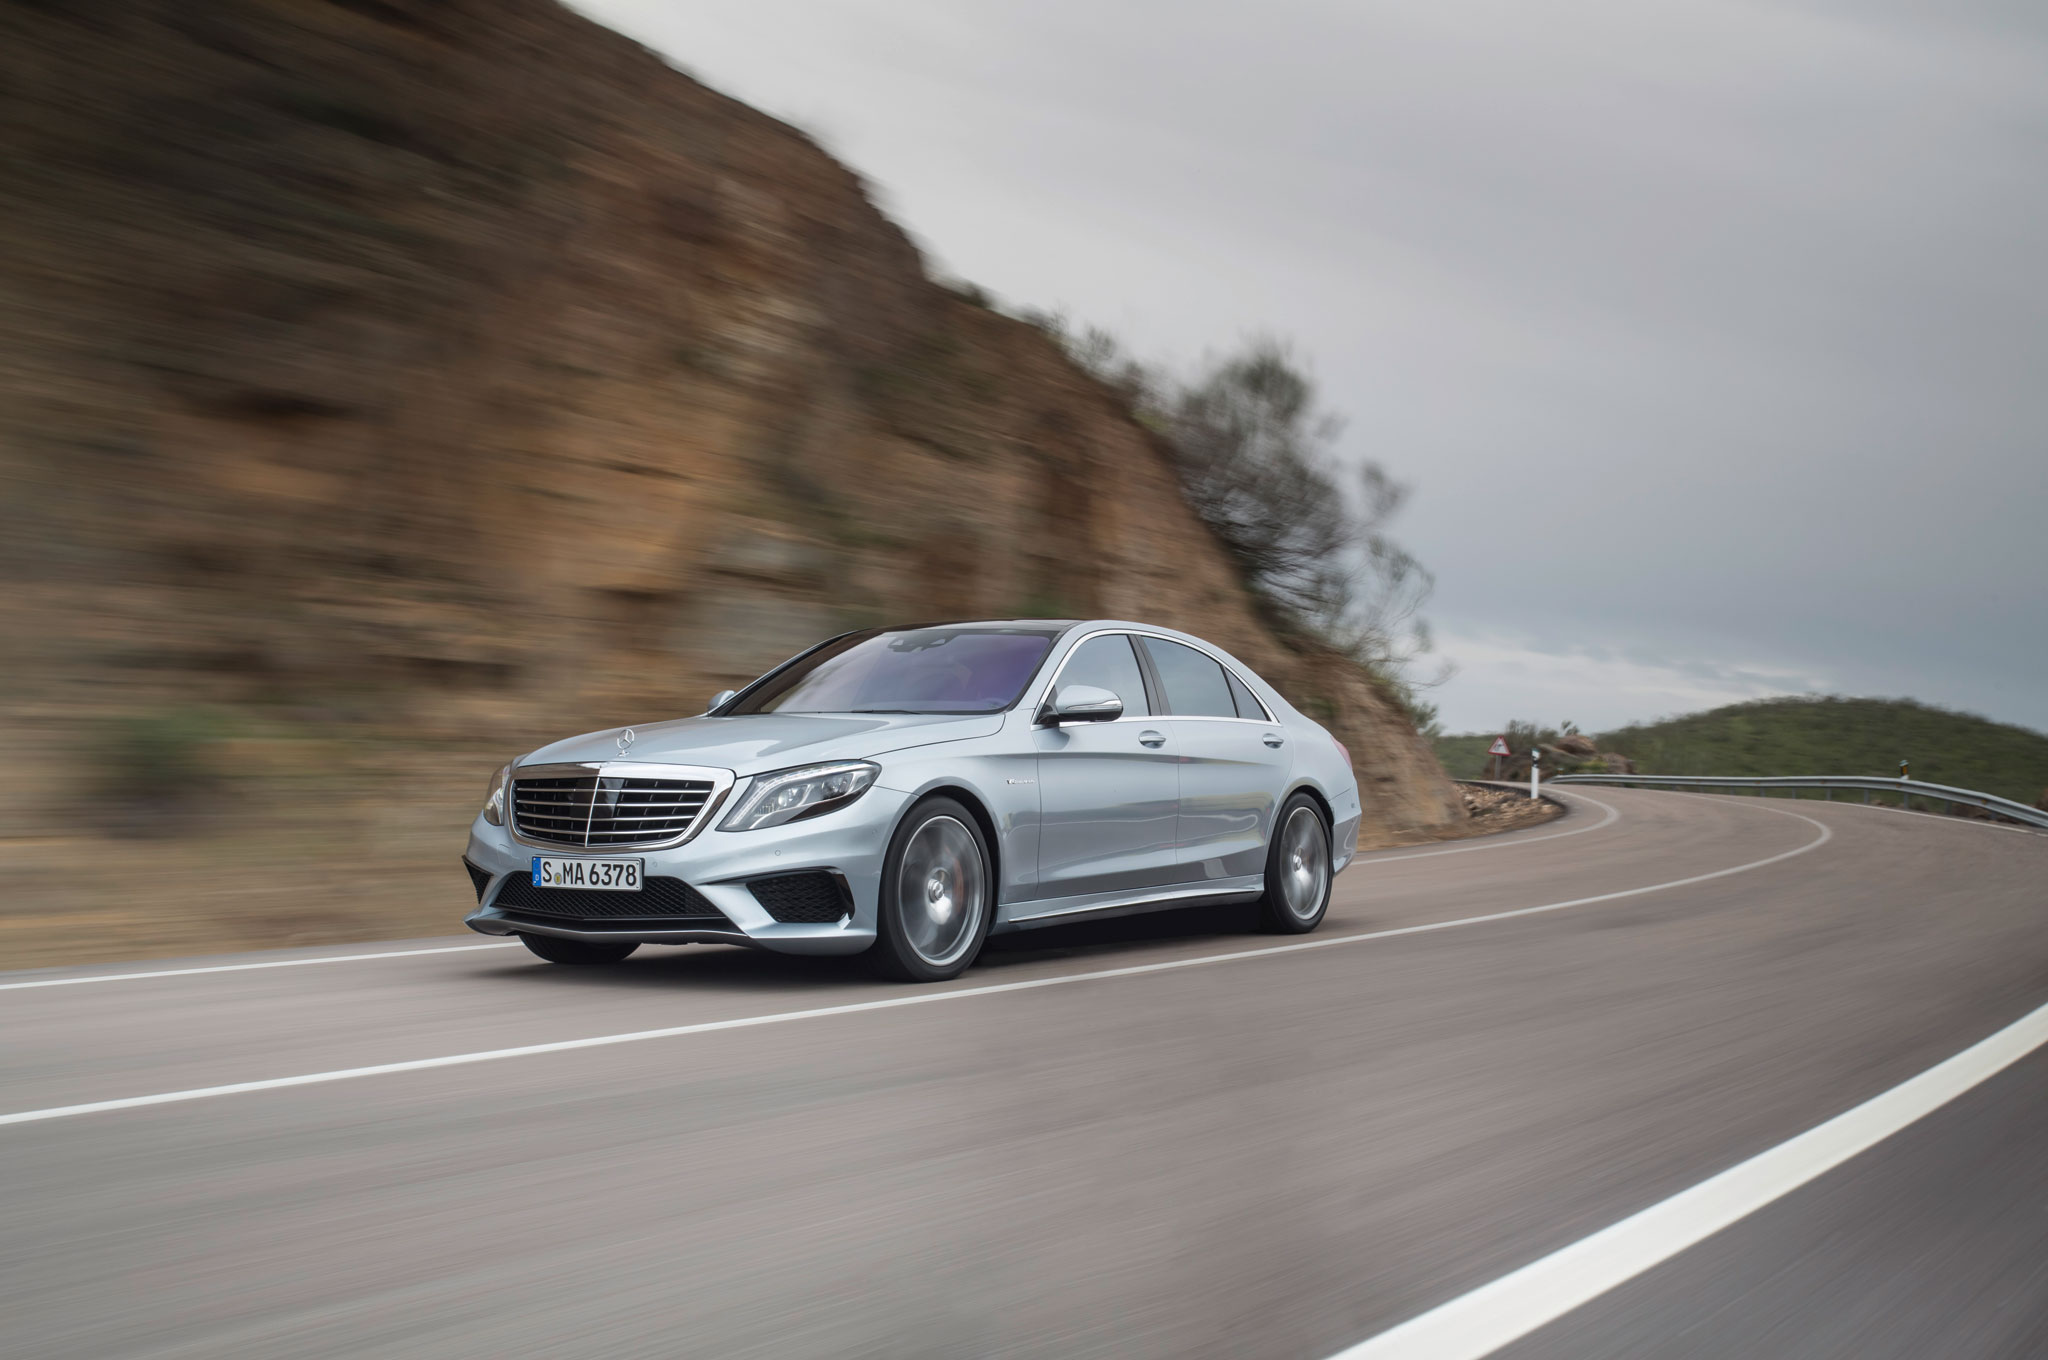 2014 mercedes benz s63 amg front left view 2 - Mercedes Benz S63 Amg 2014